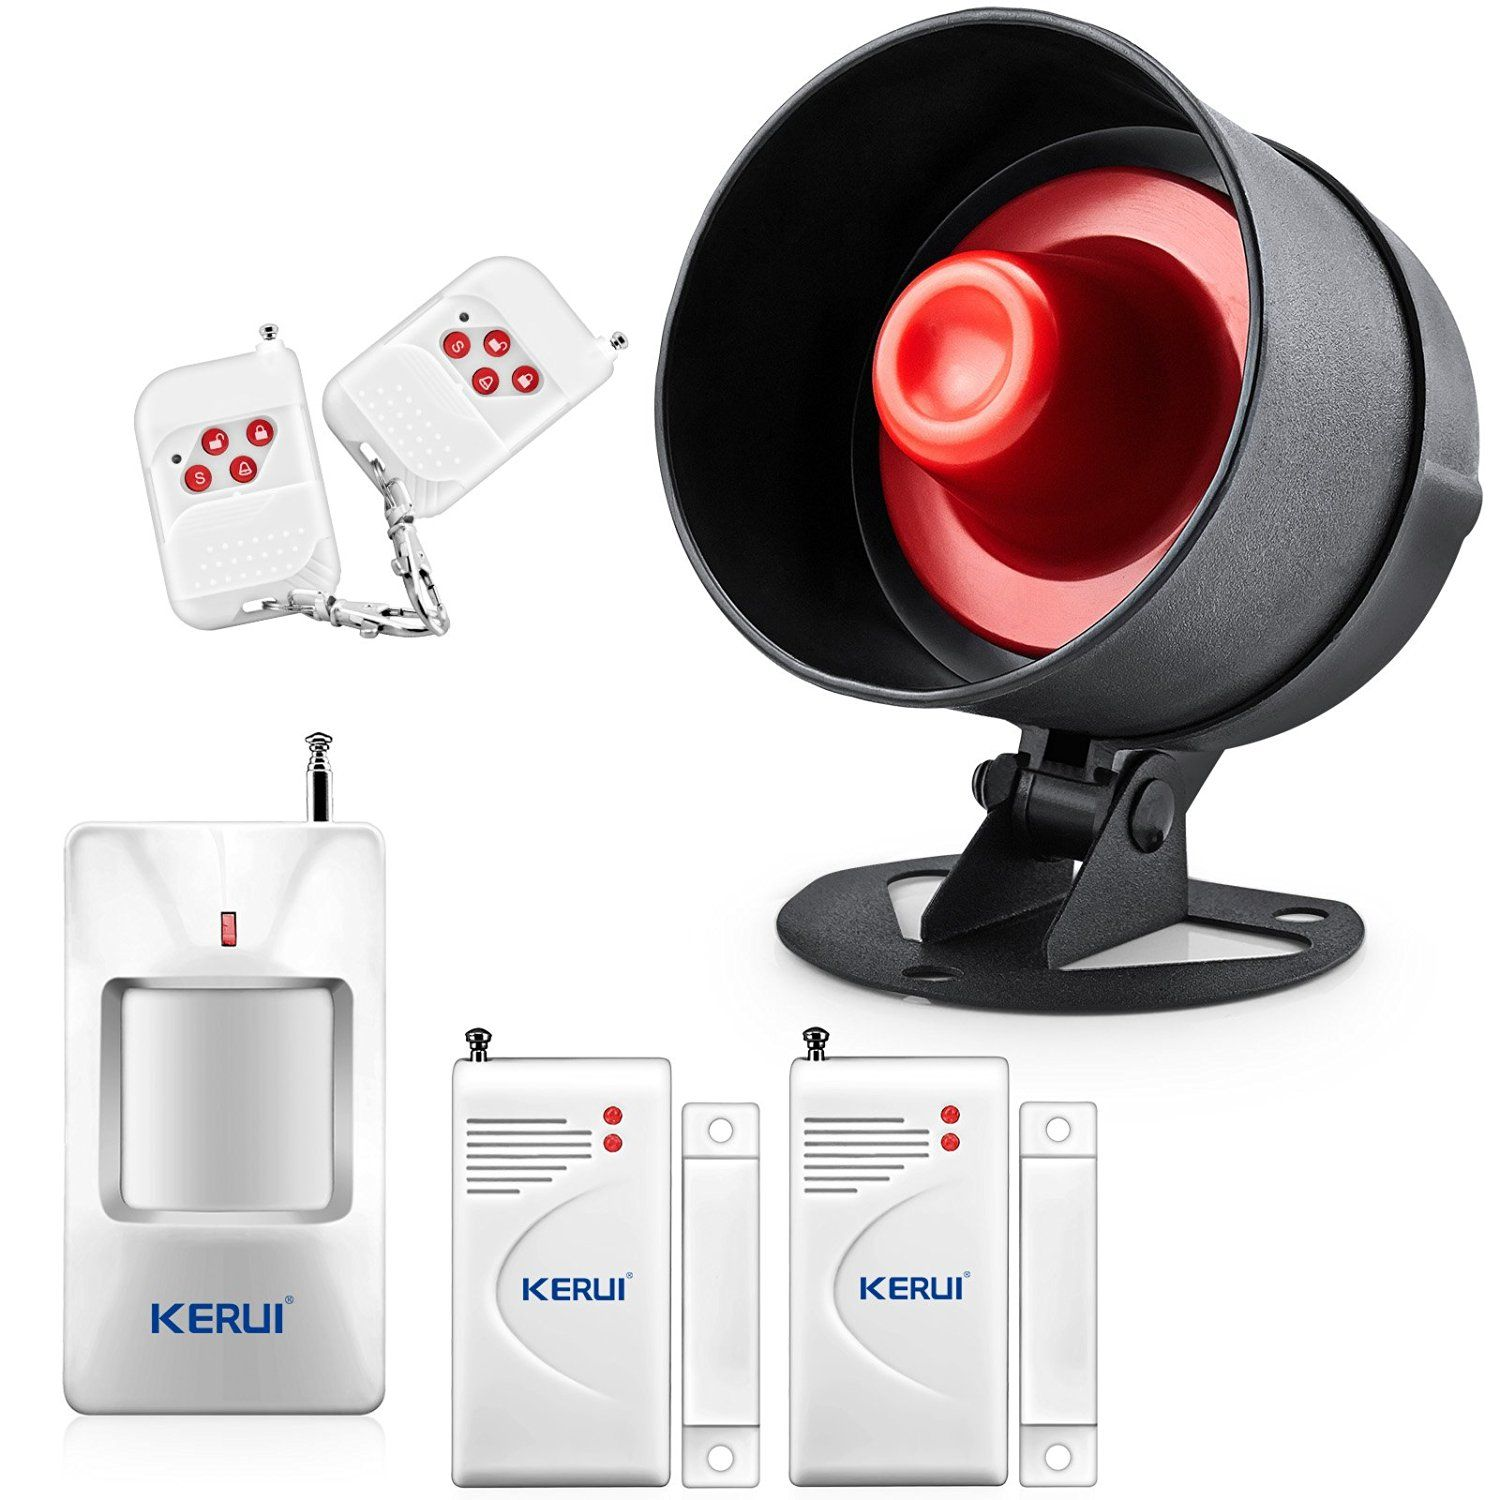 Kerui Preferred Wireless Package Home Security Alarm System Insider S Special Review You Can Home Security Alarm System Diy Home Security Home Security Alarm